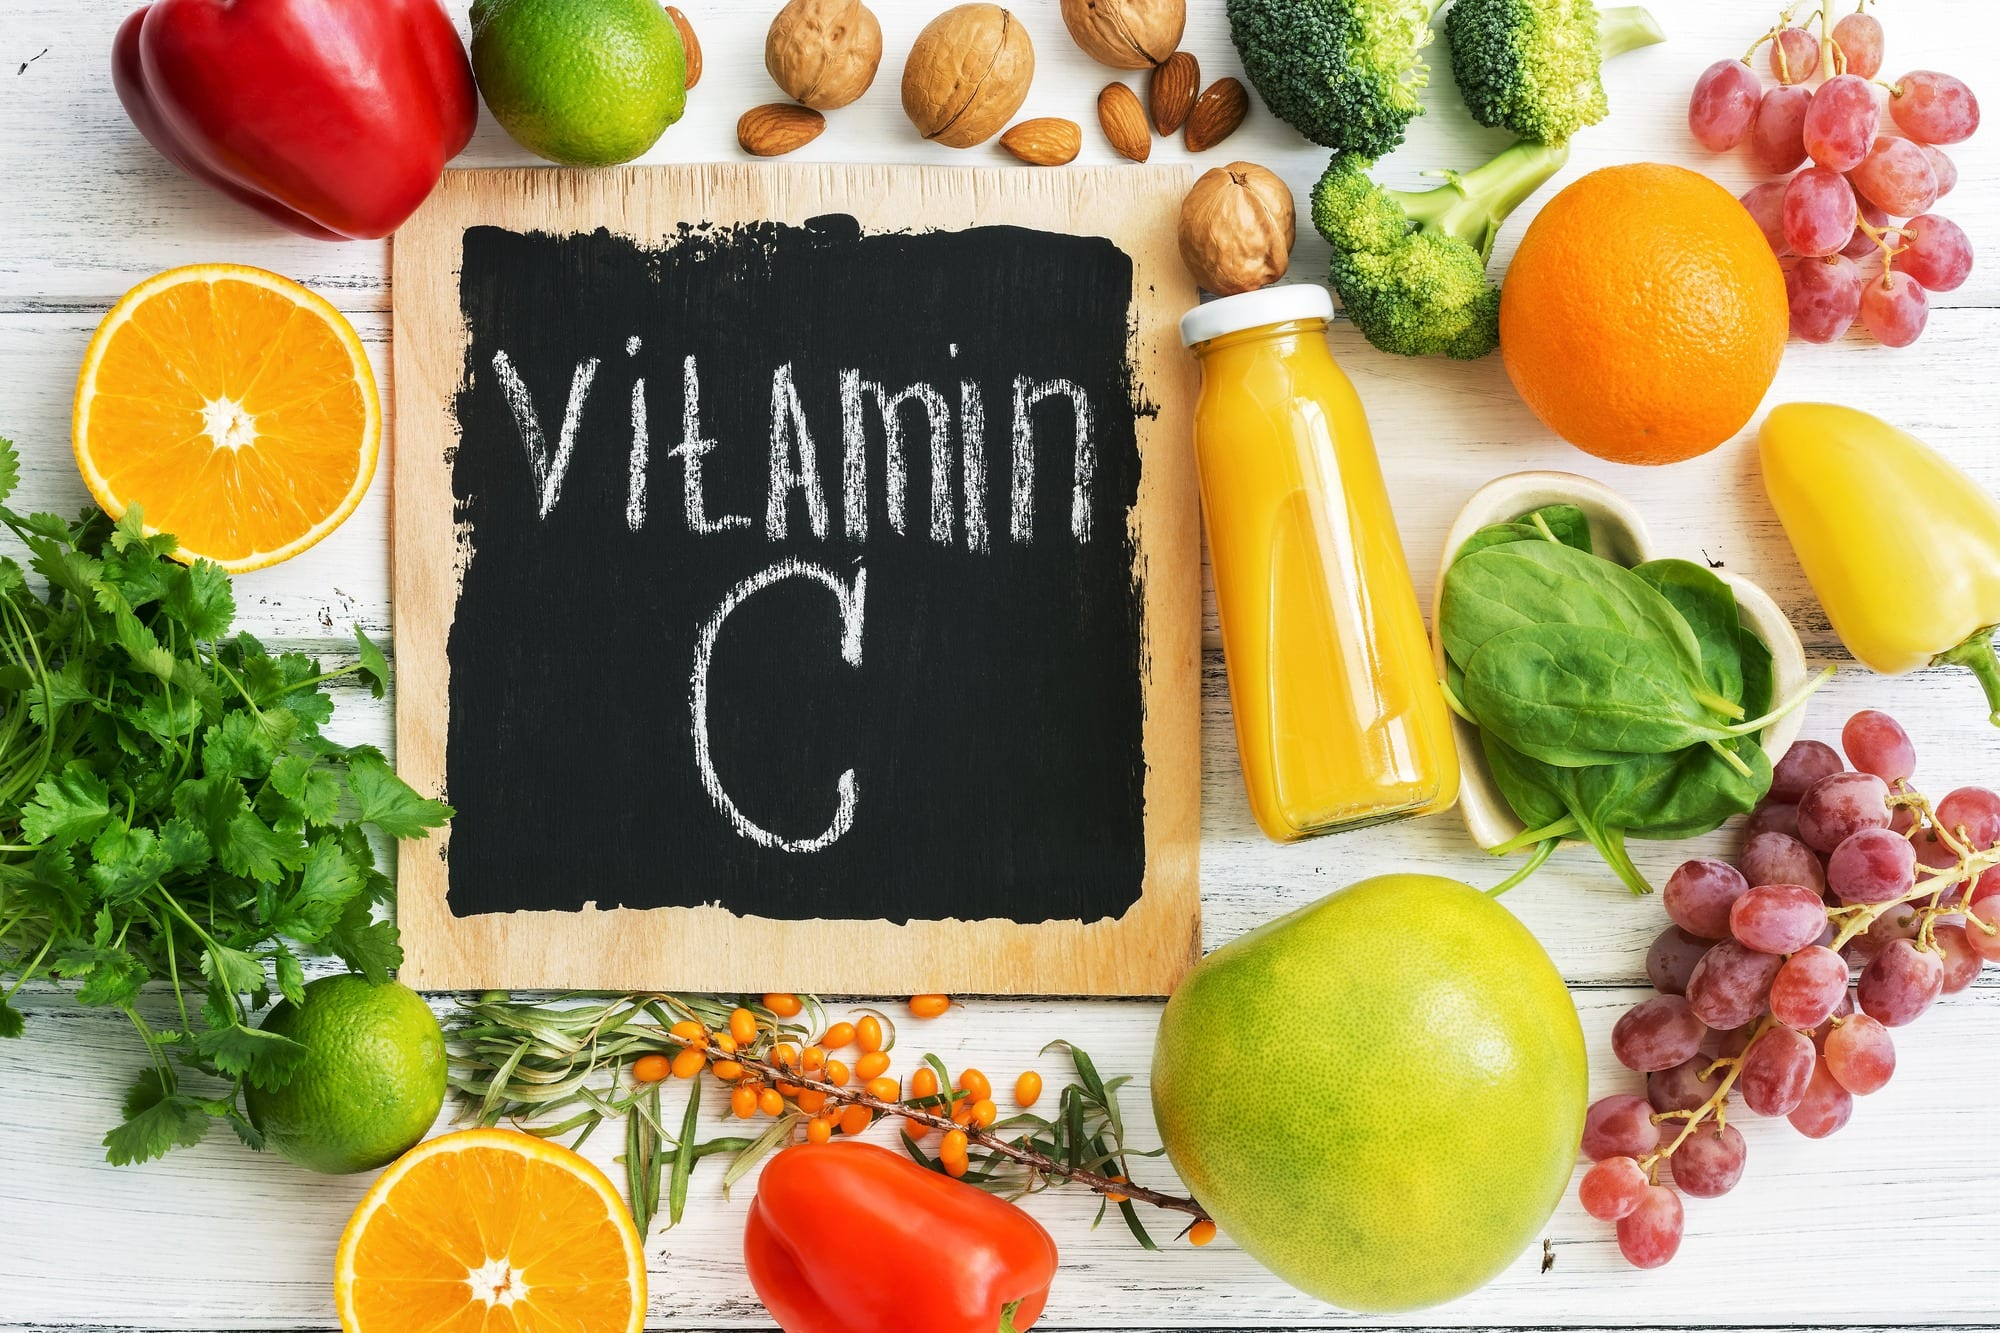 Is There Such a Thing as Too Much Vitamin C? | Meritage Medical ...